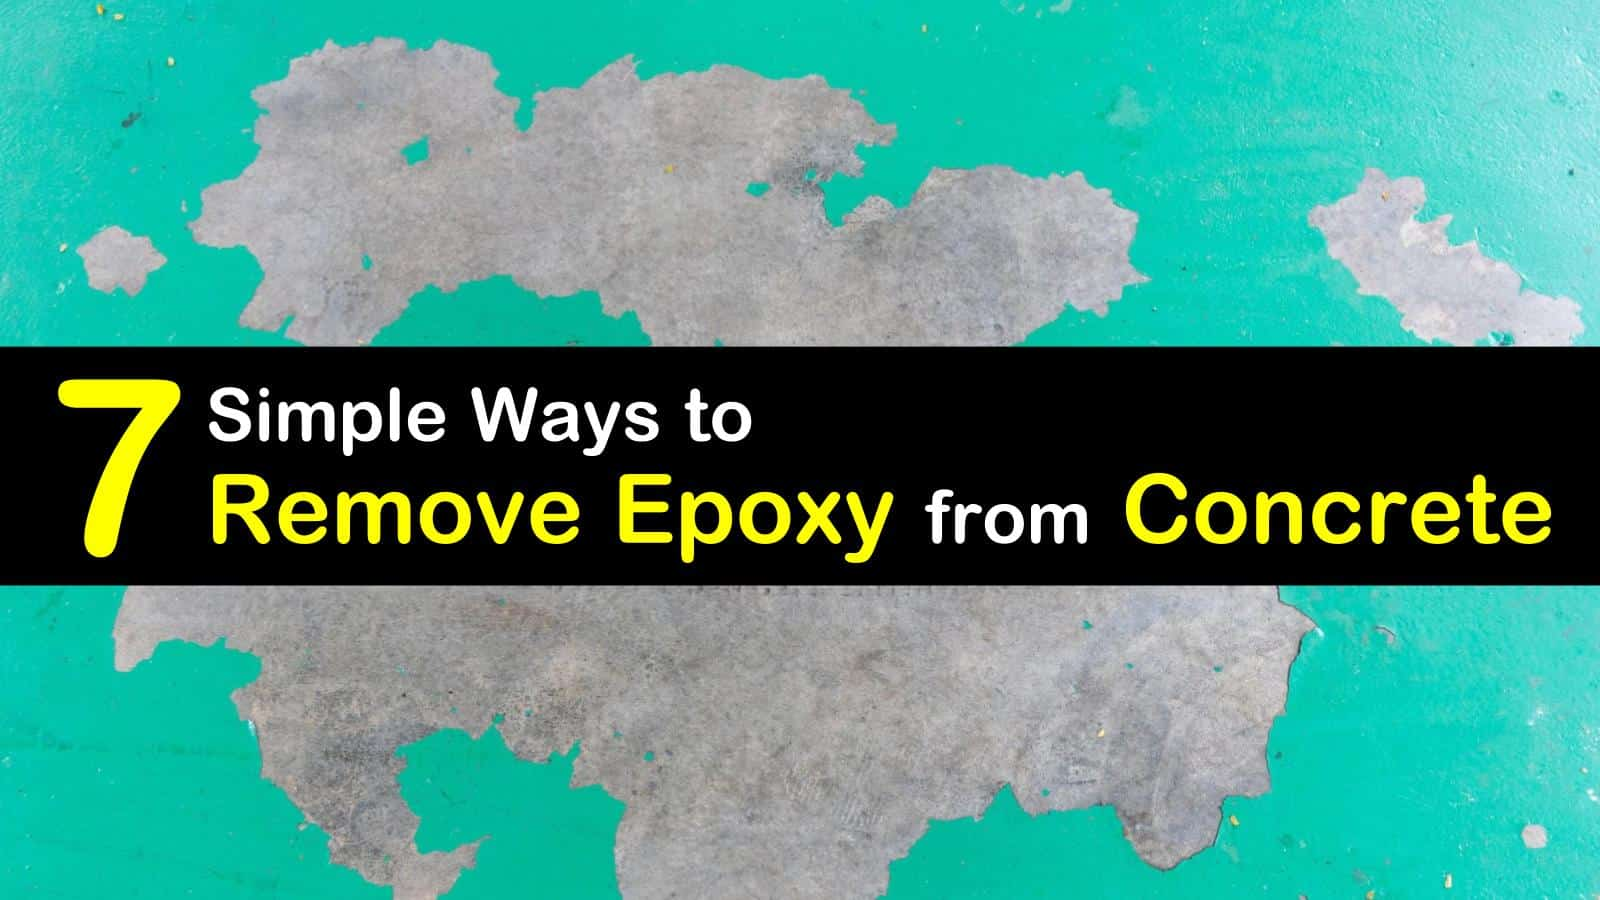 7 Simple Ways To Remove Epoxy From Concrete